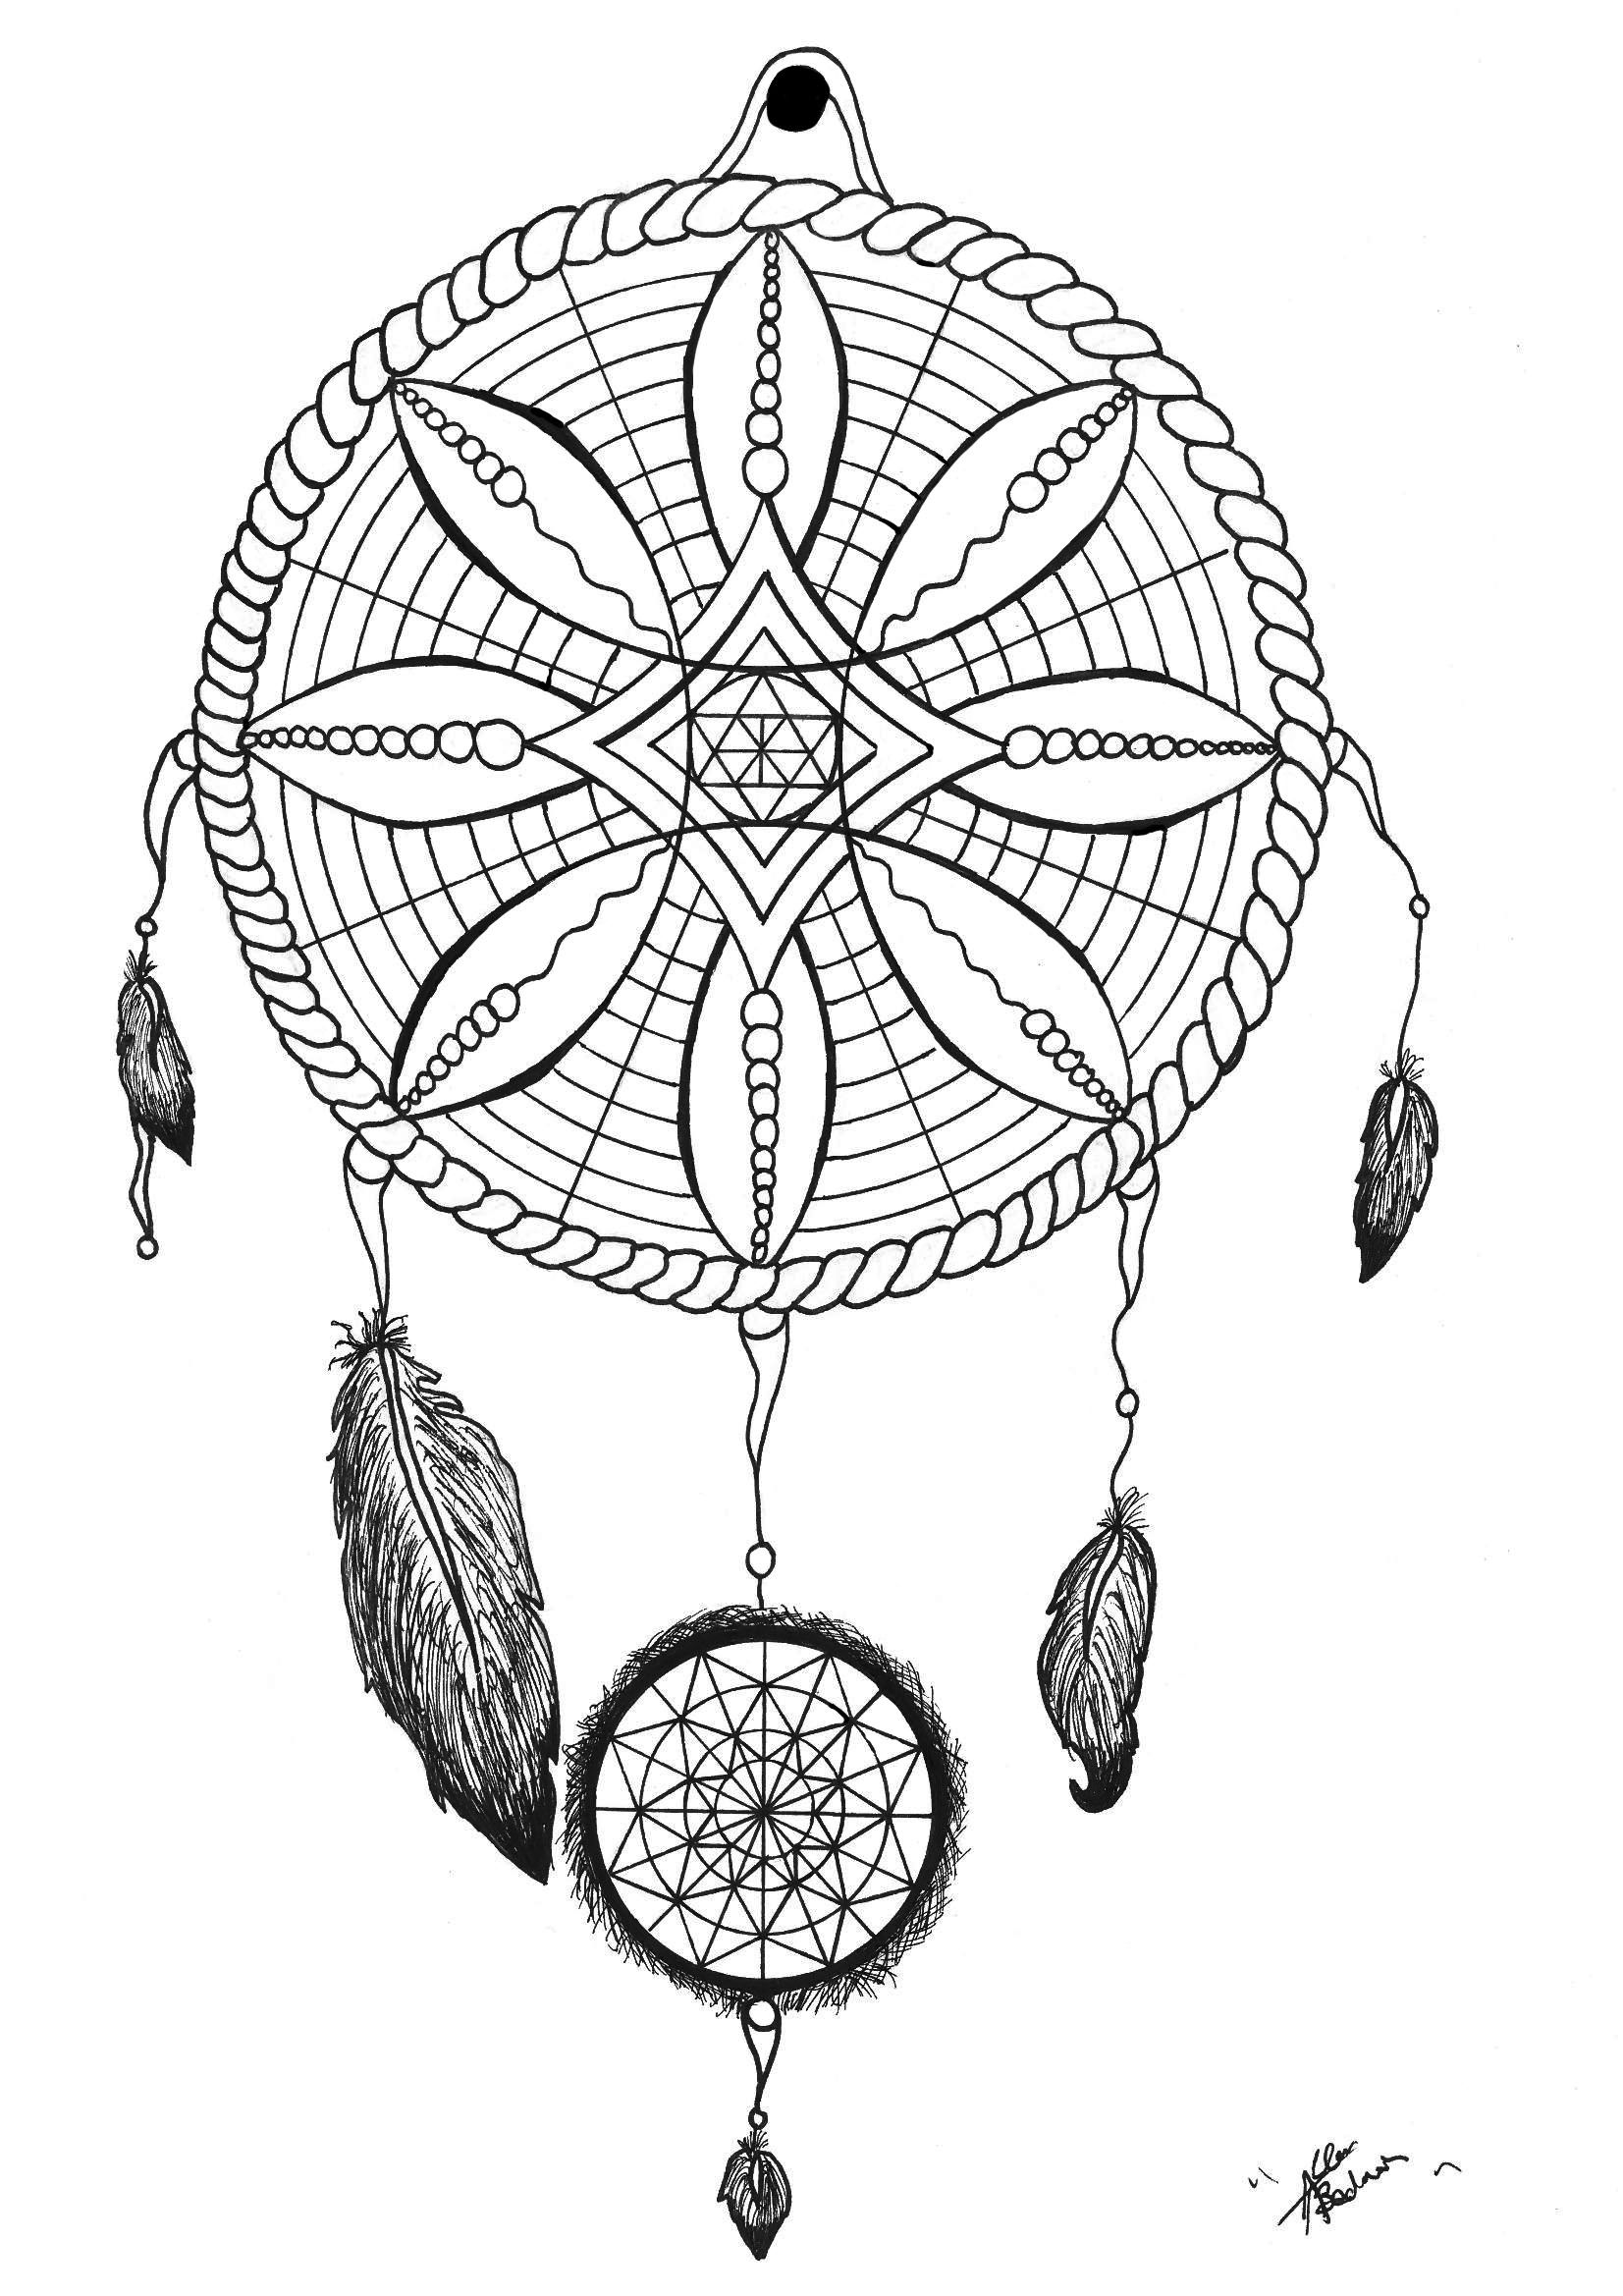 Dream Catcher Tattoo By Allan Tattoos Coloring Pages For Coloring Pages For Adults